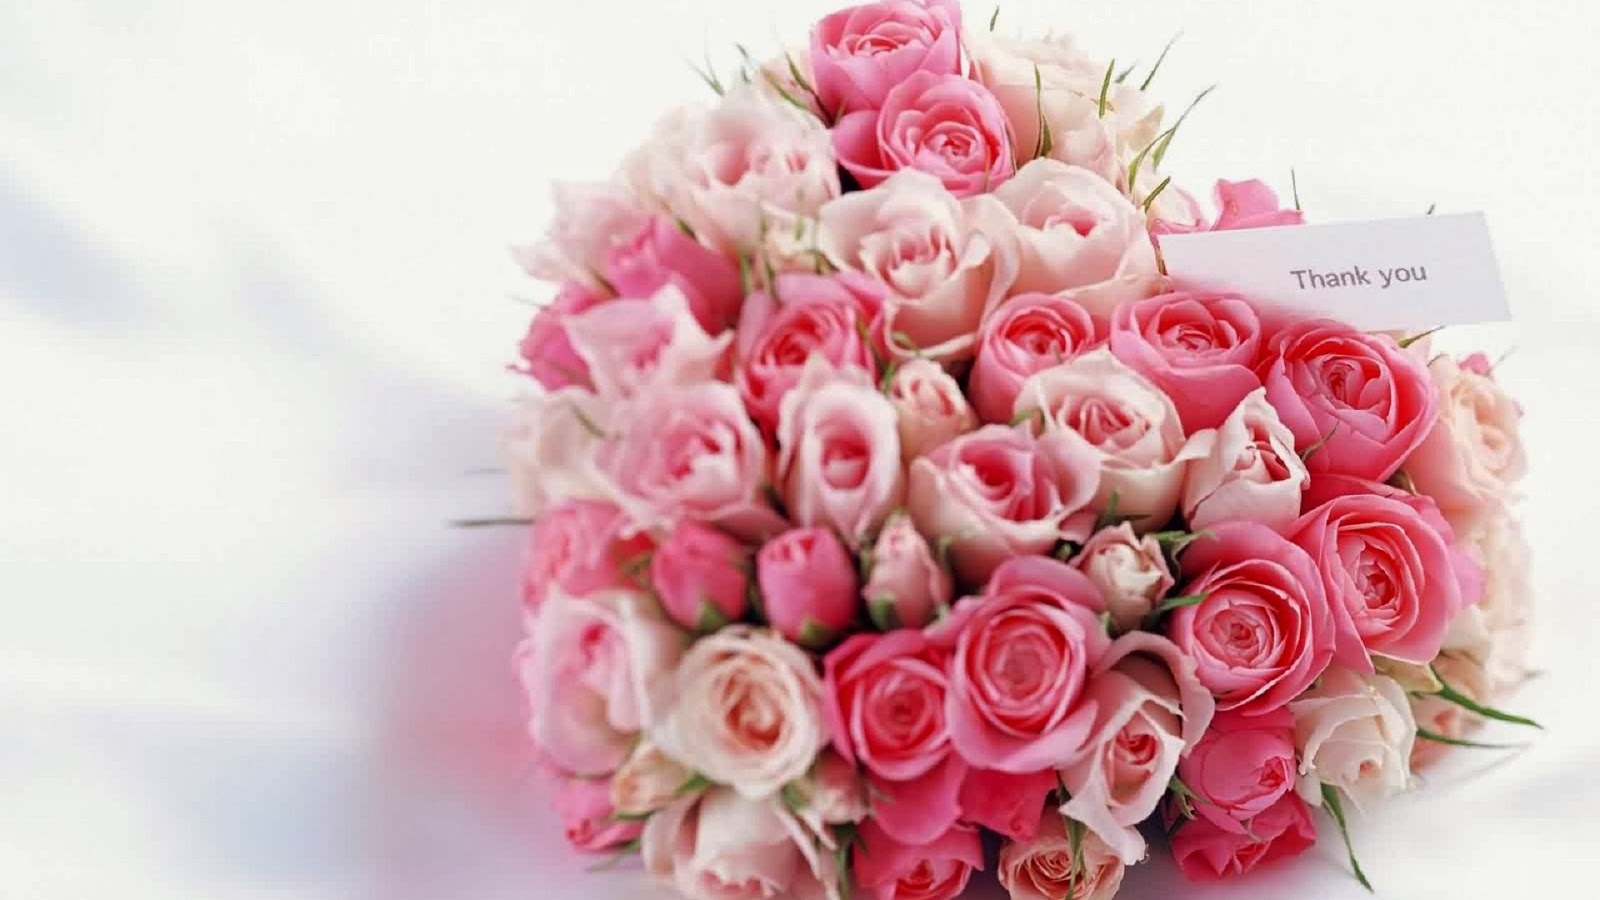 Happy Valentine s Day Flowers Wallpapers